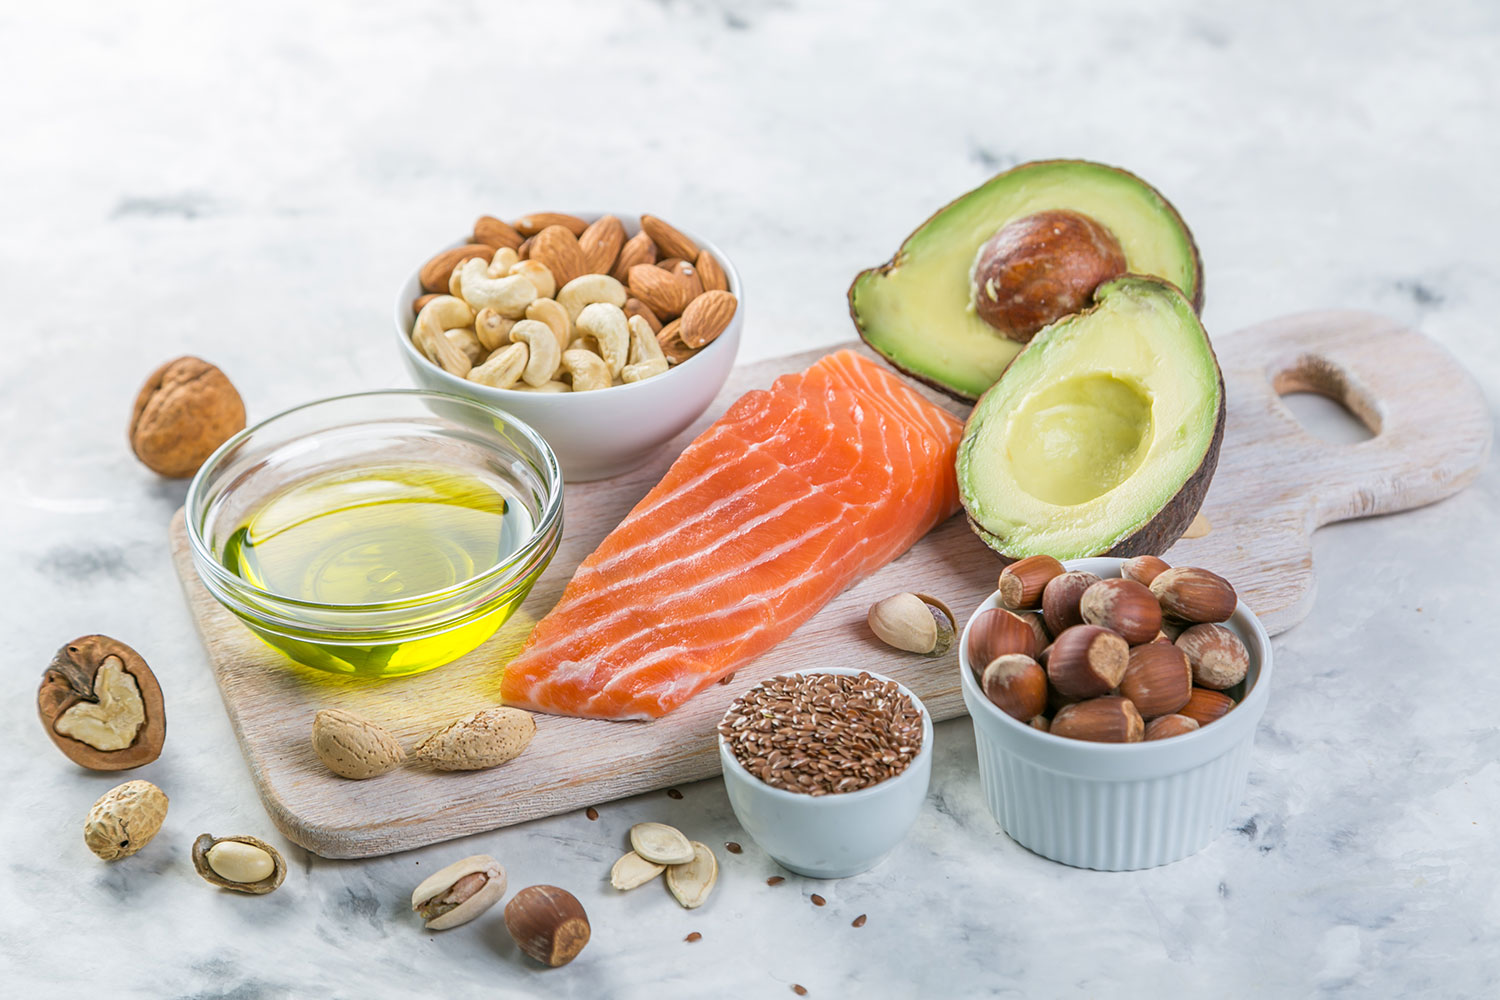 8 Essential Healthy Fats to Add to Your Grocery List